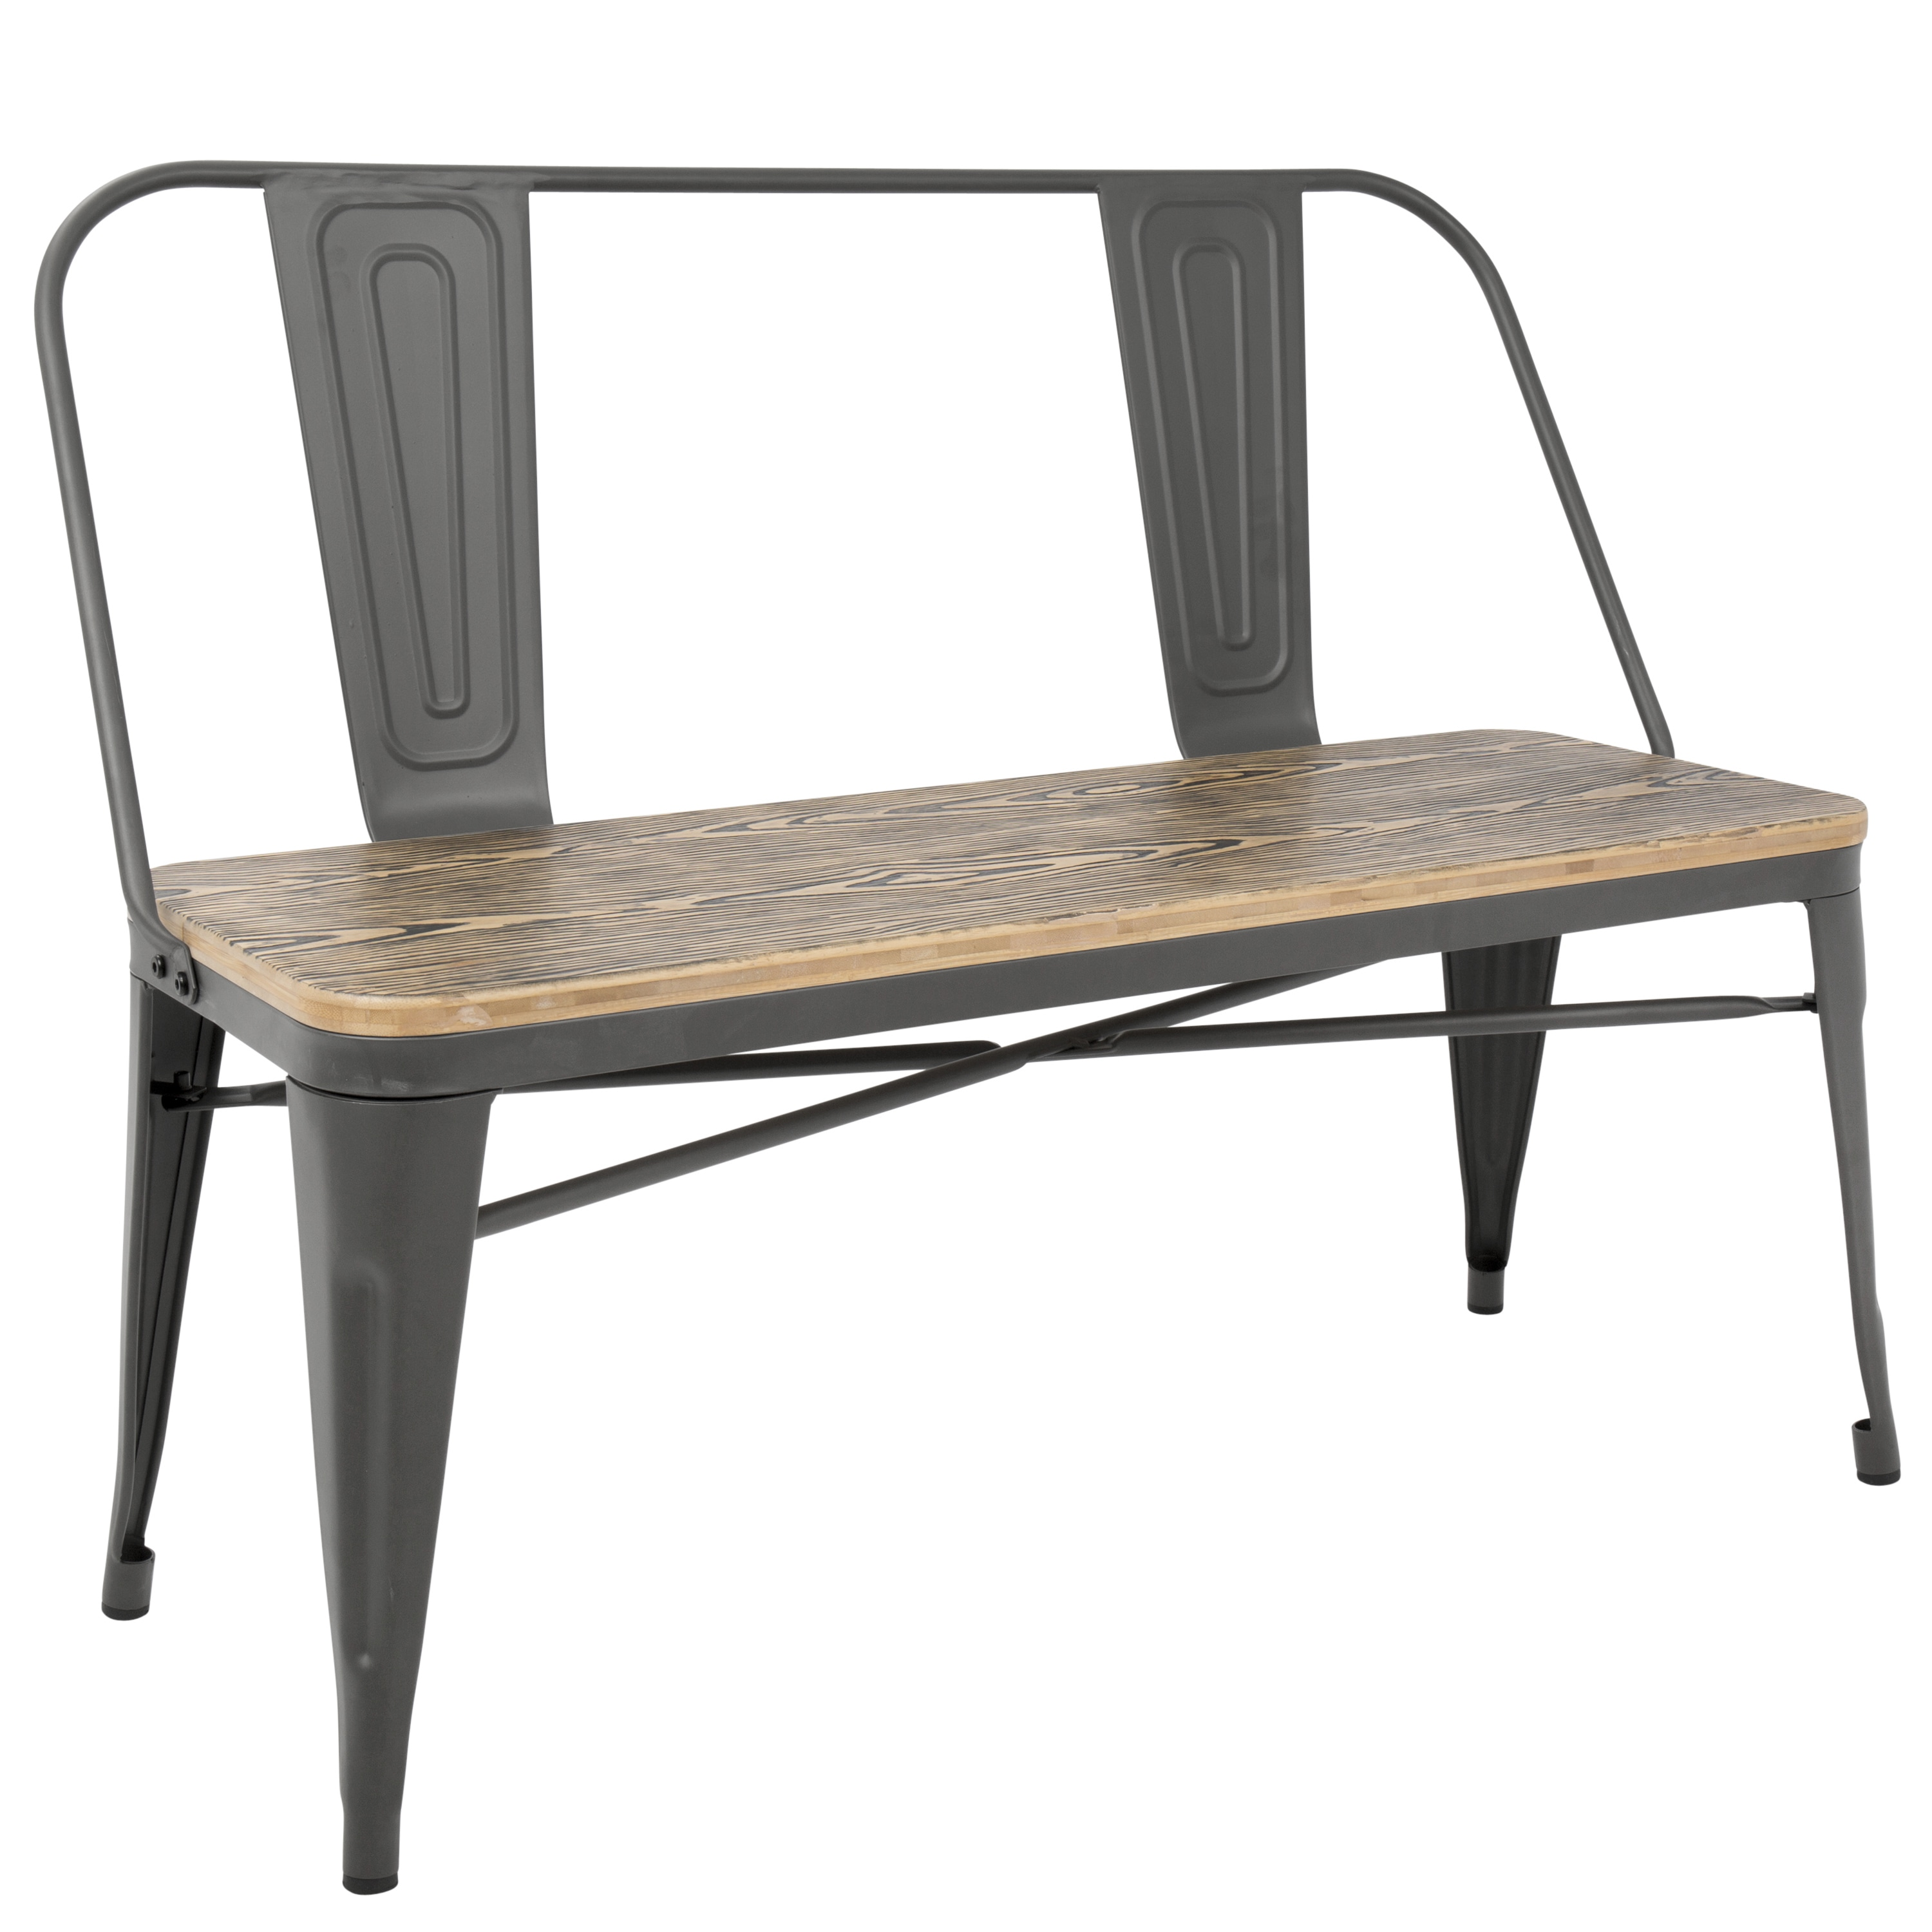 Admirable Carbon Loft Boyer Industrial Metal And Wood Dining Entryway Pabps2019 Chair Design Images Pabps2019Com